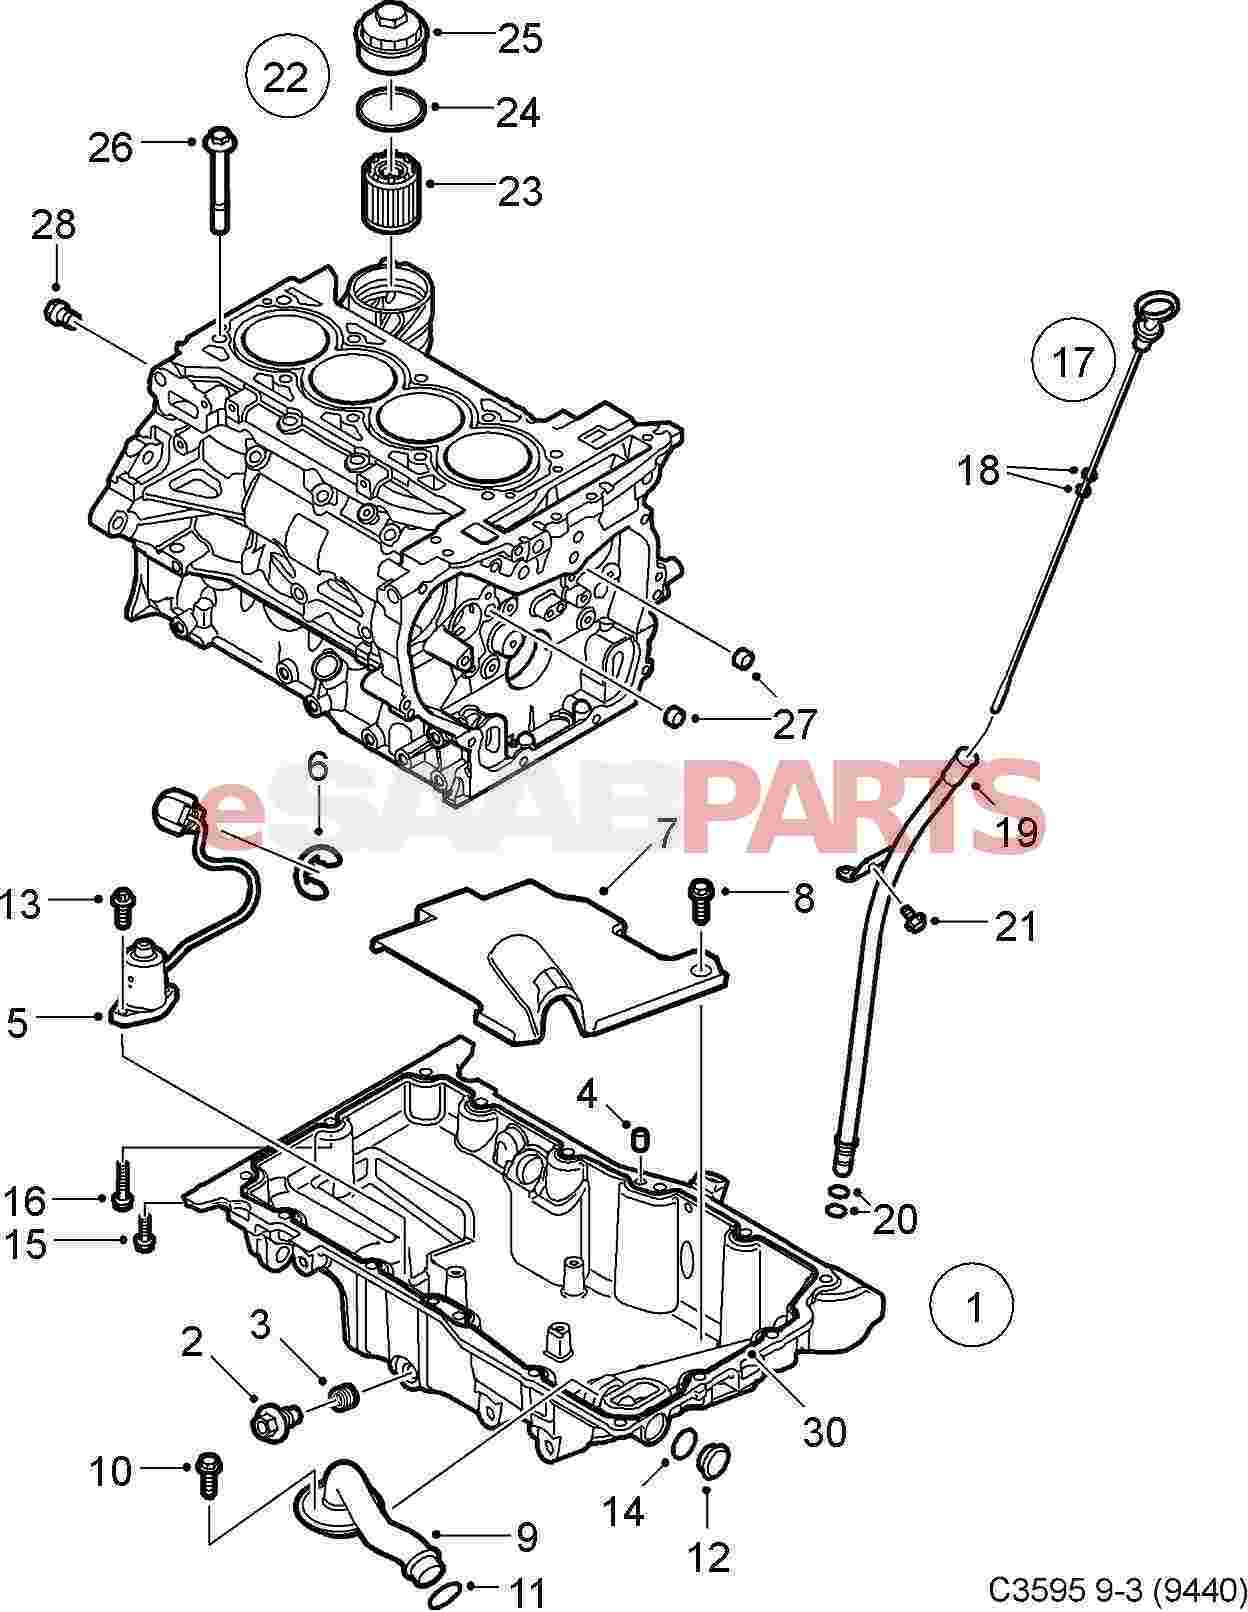 12787978 saab oil level tube genuine saab parts from esaabparts com rh esaabparts com Saab Parts Diagram Saab 9 3 1999 Serpentine Belt